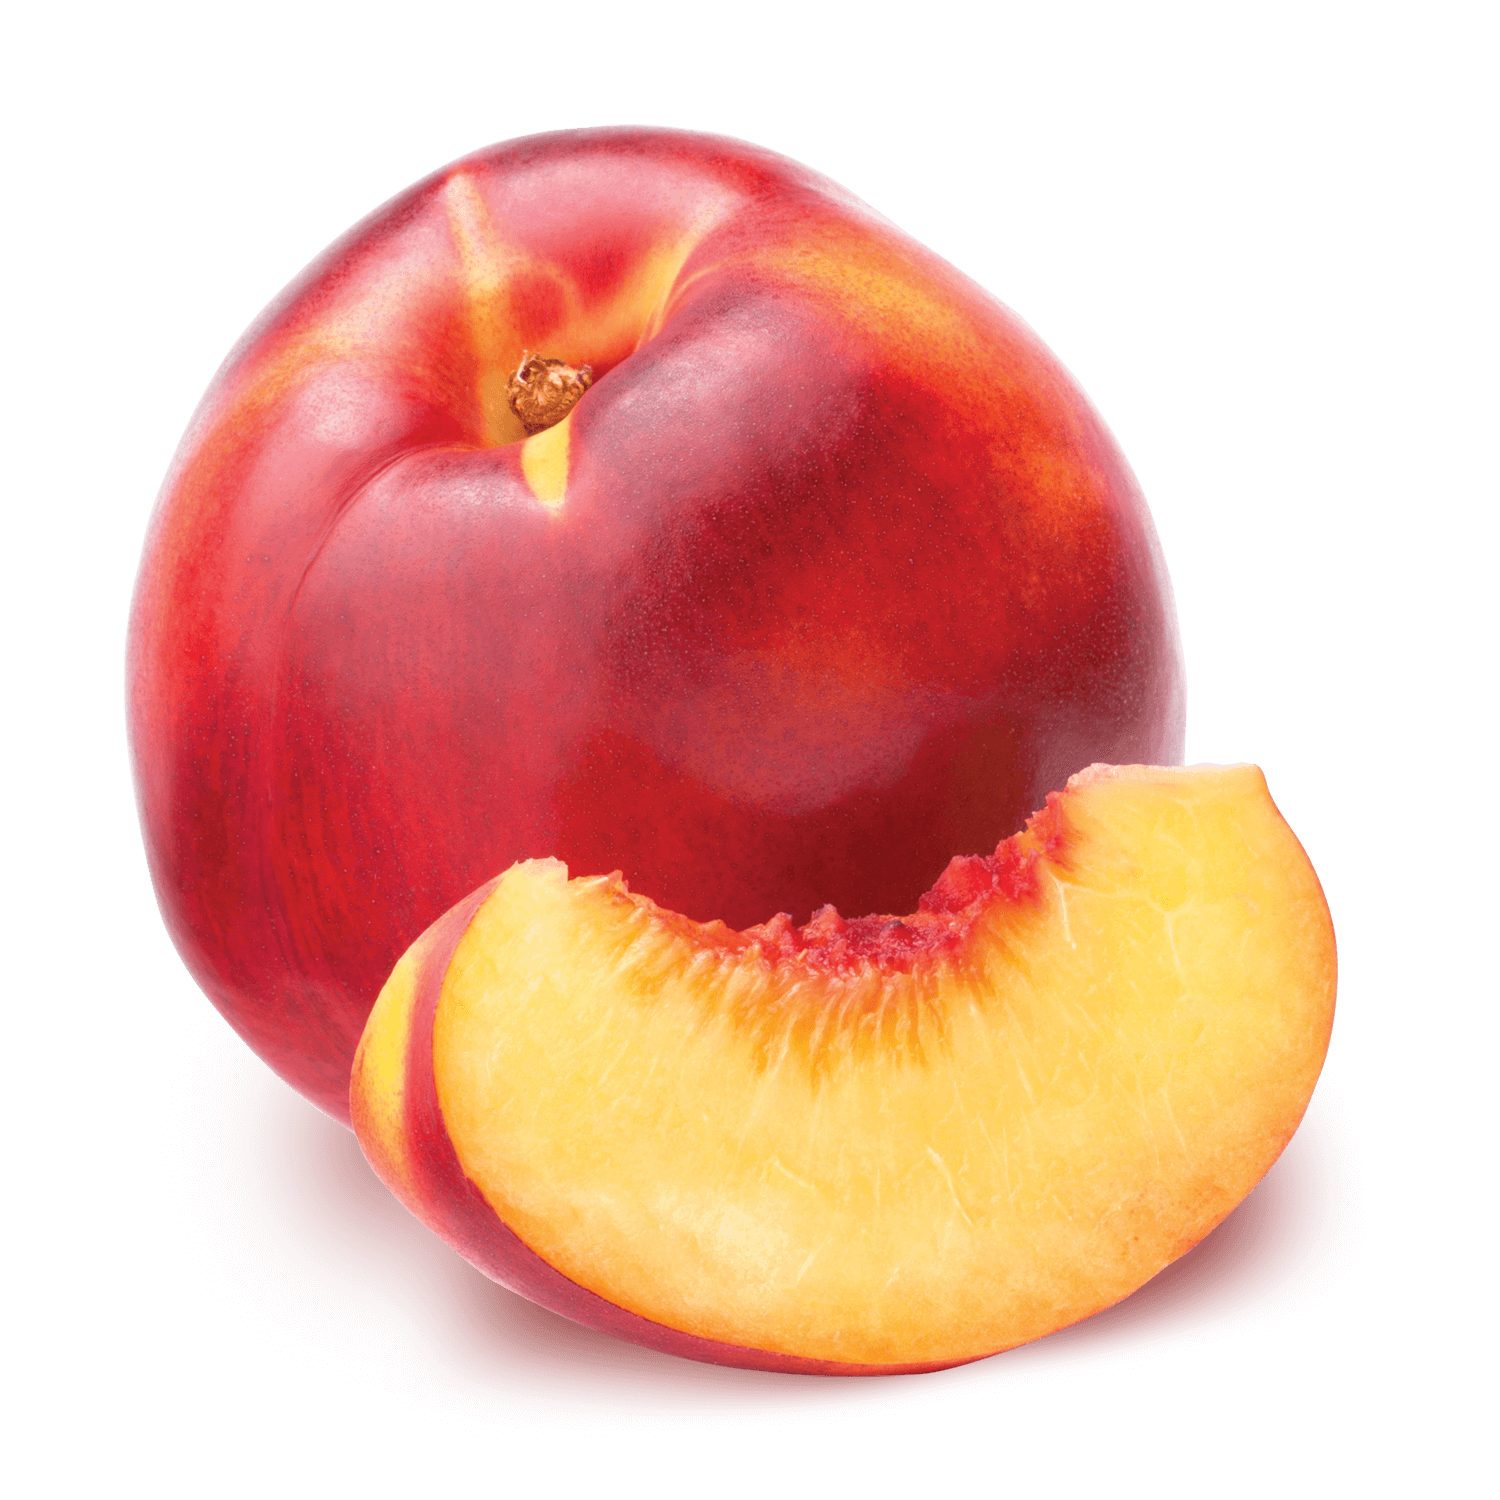 HQ Nectarine Wallpapers | File 579.79Kb